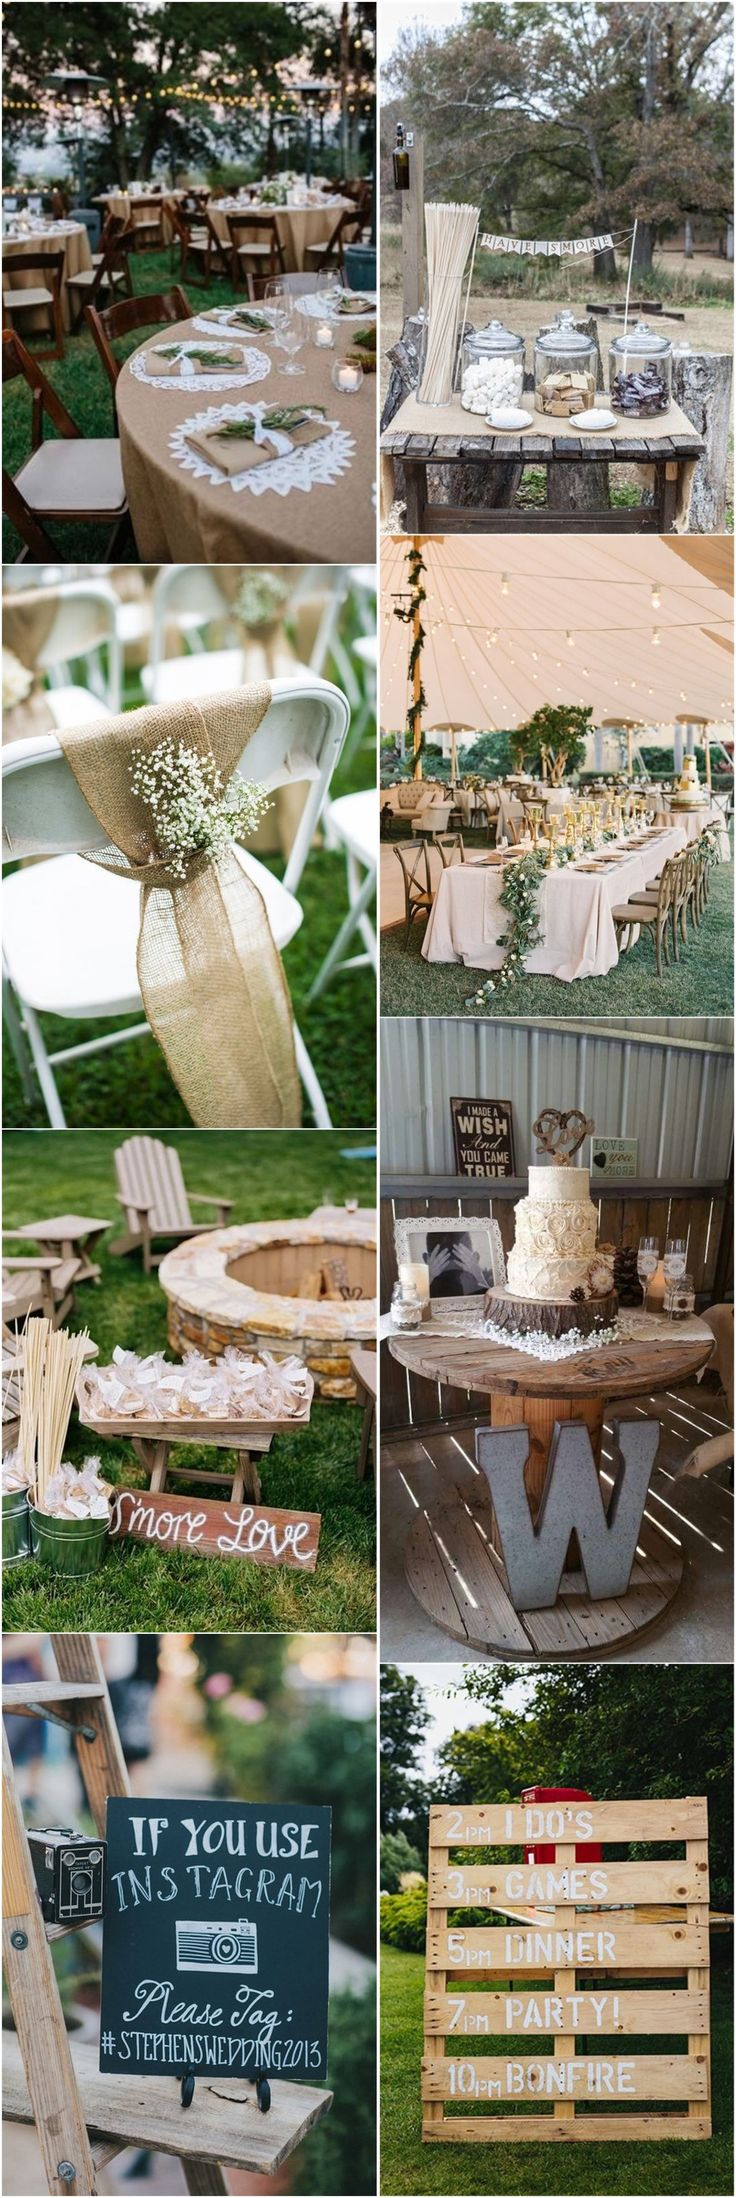 802 best rustic weddings images on pinterest outdoor for Yard decorating ideas on a budget